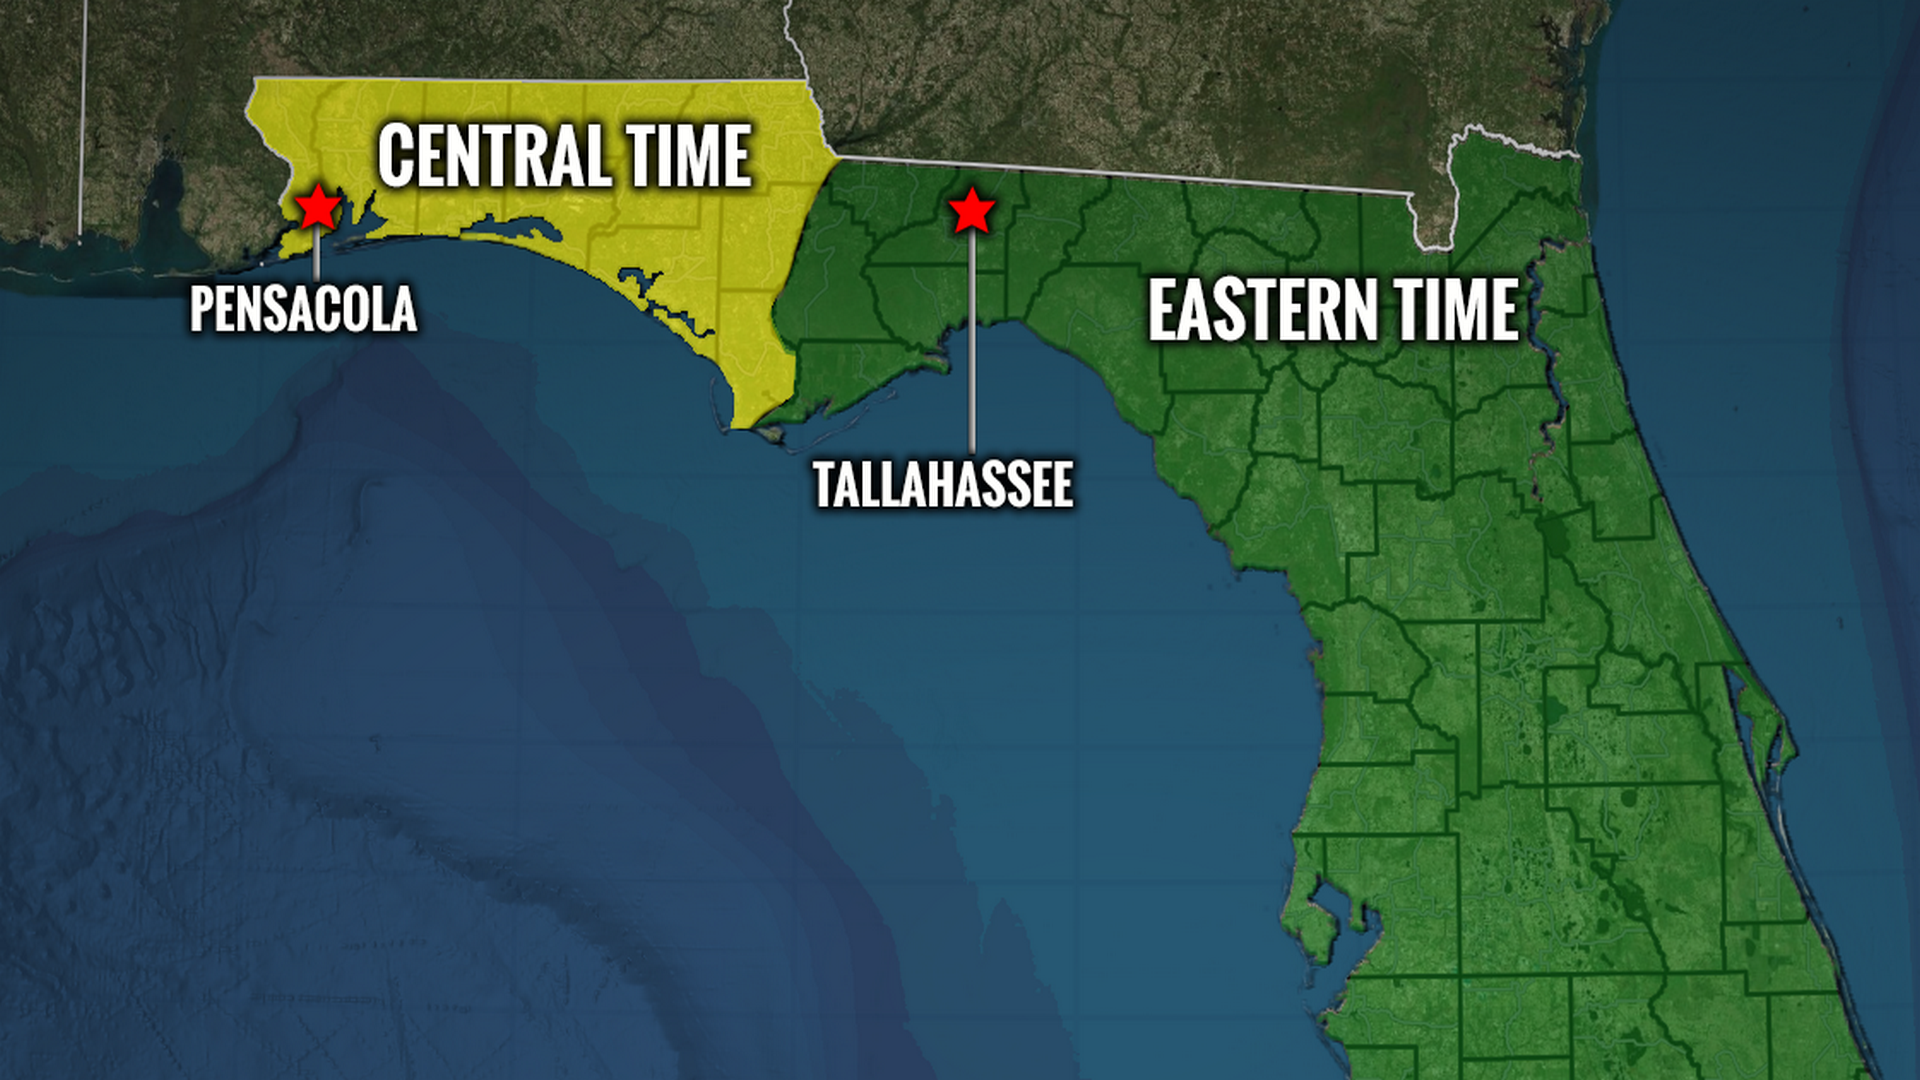 Florida Time Zone Map Northwest Florida in Eastern time zone? Bills would unify state